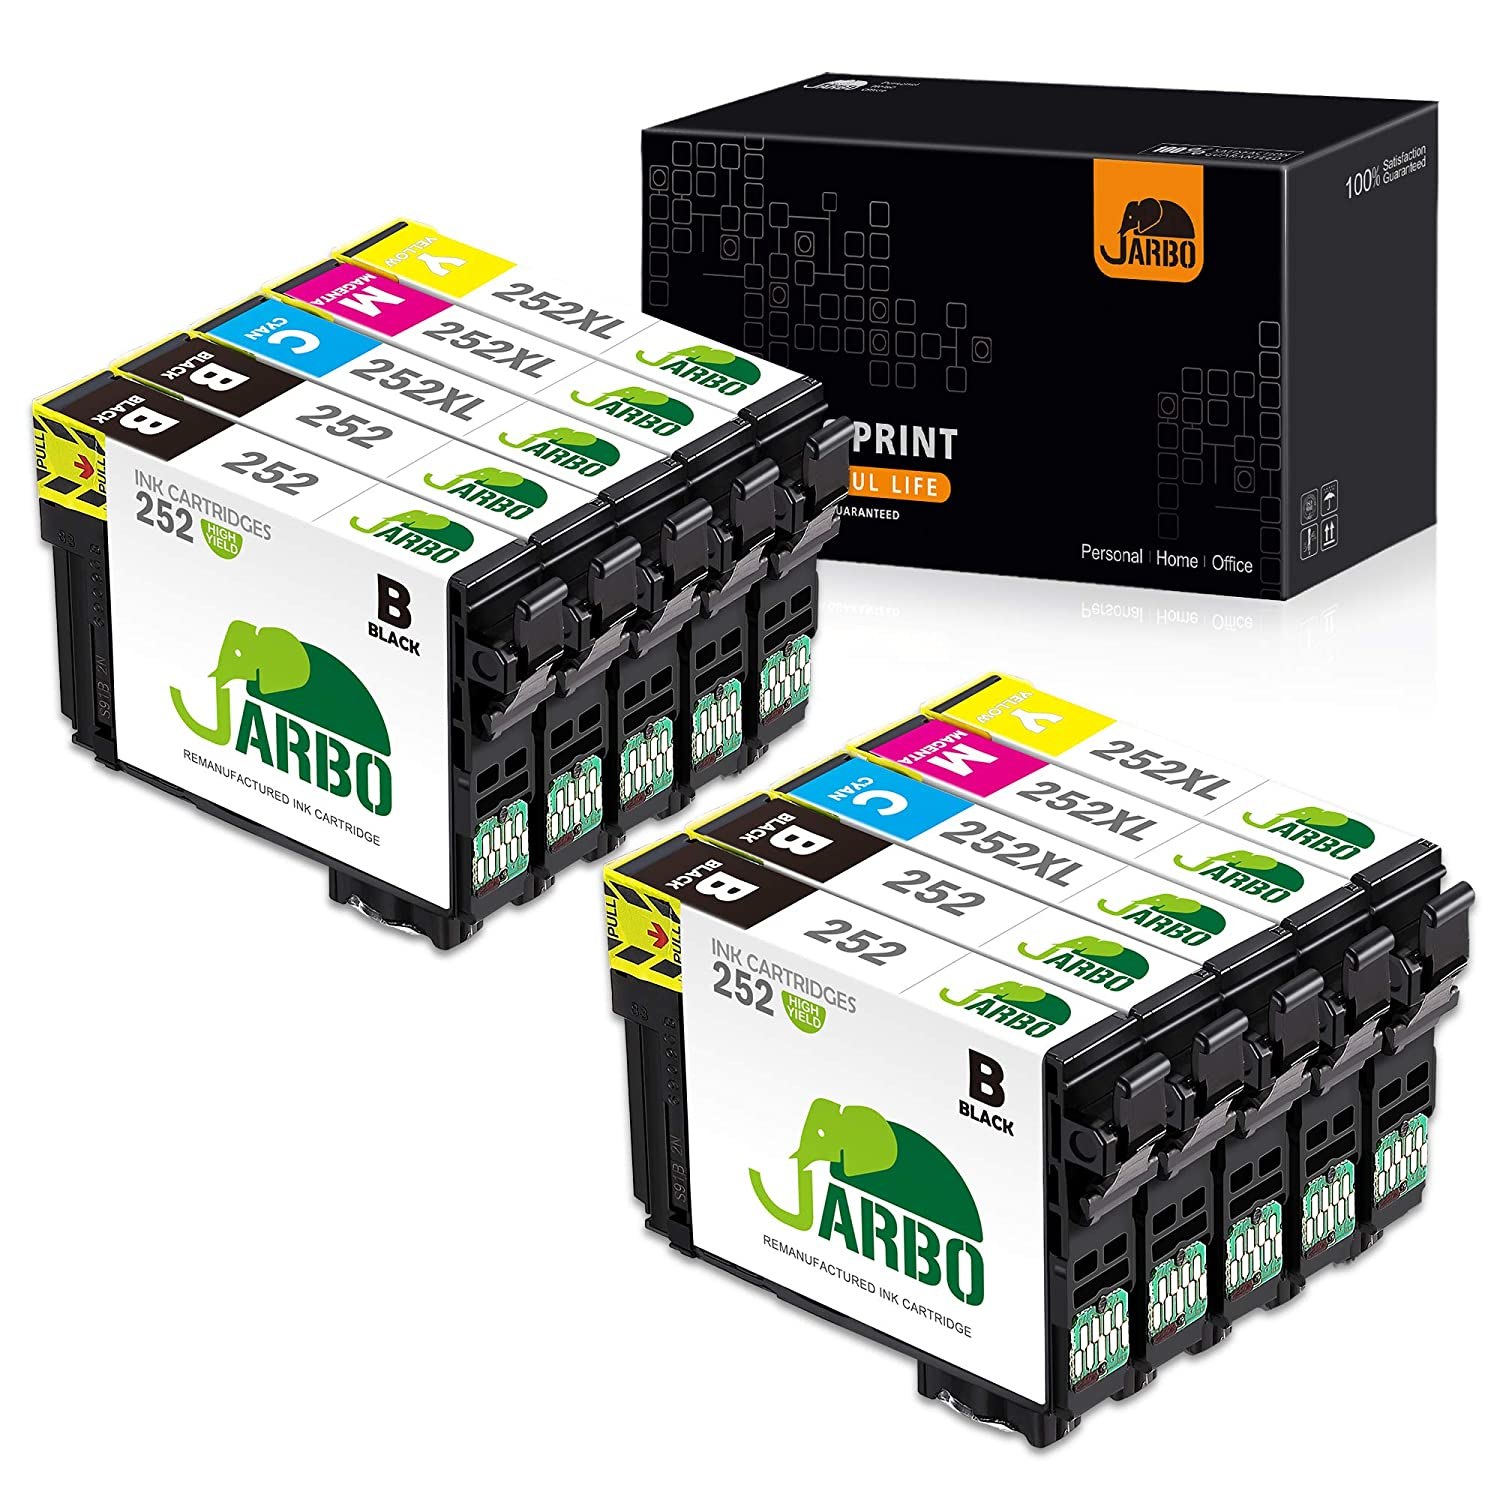 4BK, 2C, 2M, 2Y JARBO Remanufactured Ink Cartridge Replacement for Epson 252XL 252 XL T252 T252XL to use with Workforce WF-3640 WF-3620 WF-7110 WF-7710 WF-7720 Printer 10 Packs